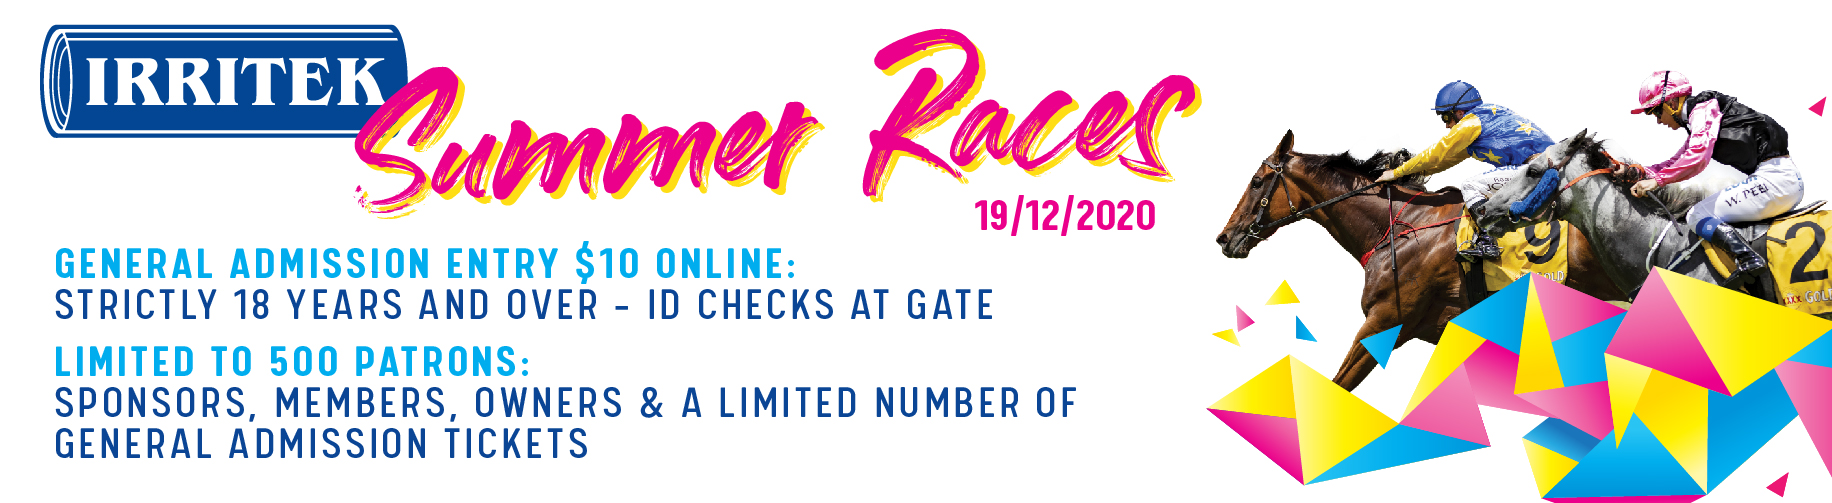 _website banner summer races-02